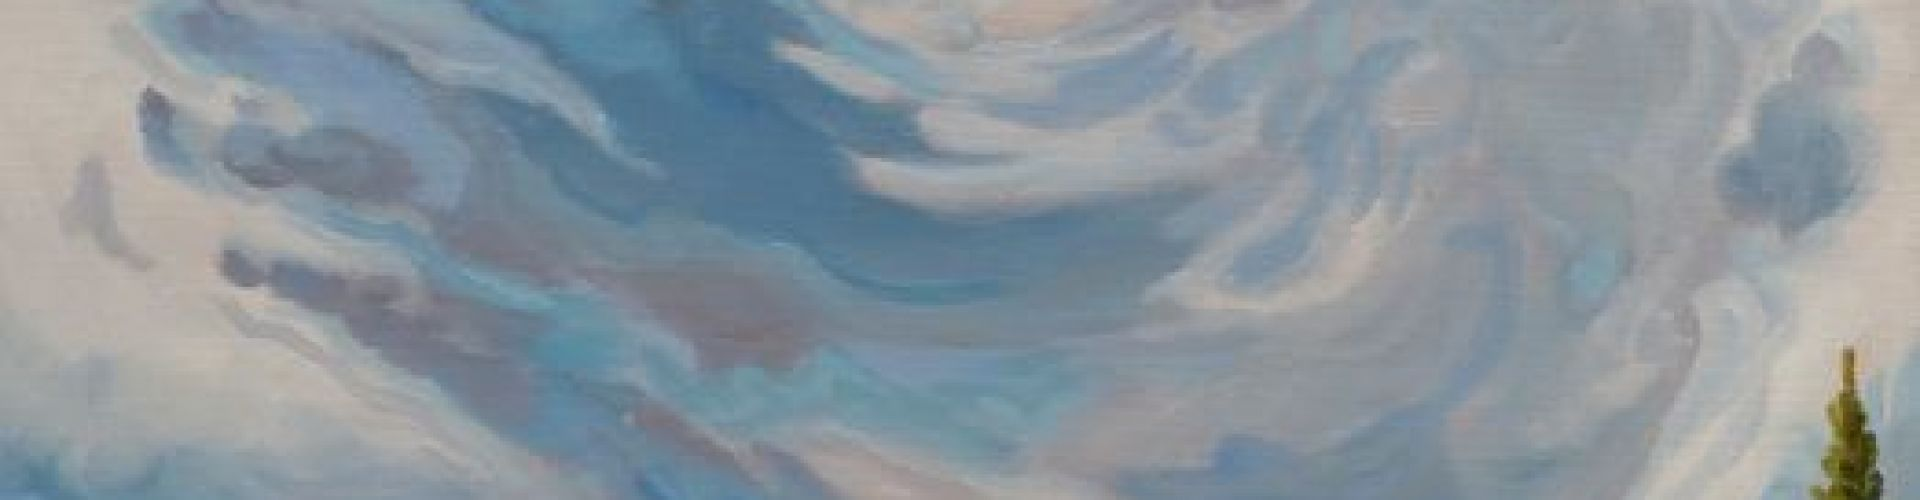 A painting of a landscape with a storm in the sky by Linda Lovisa.